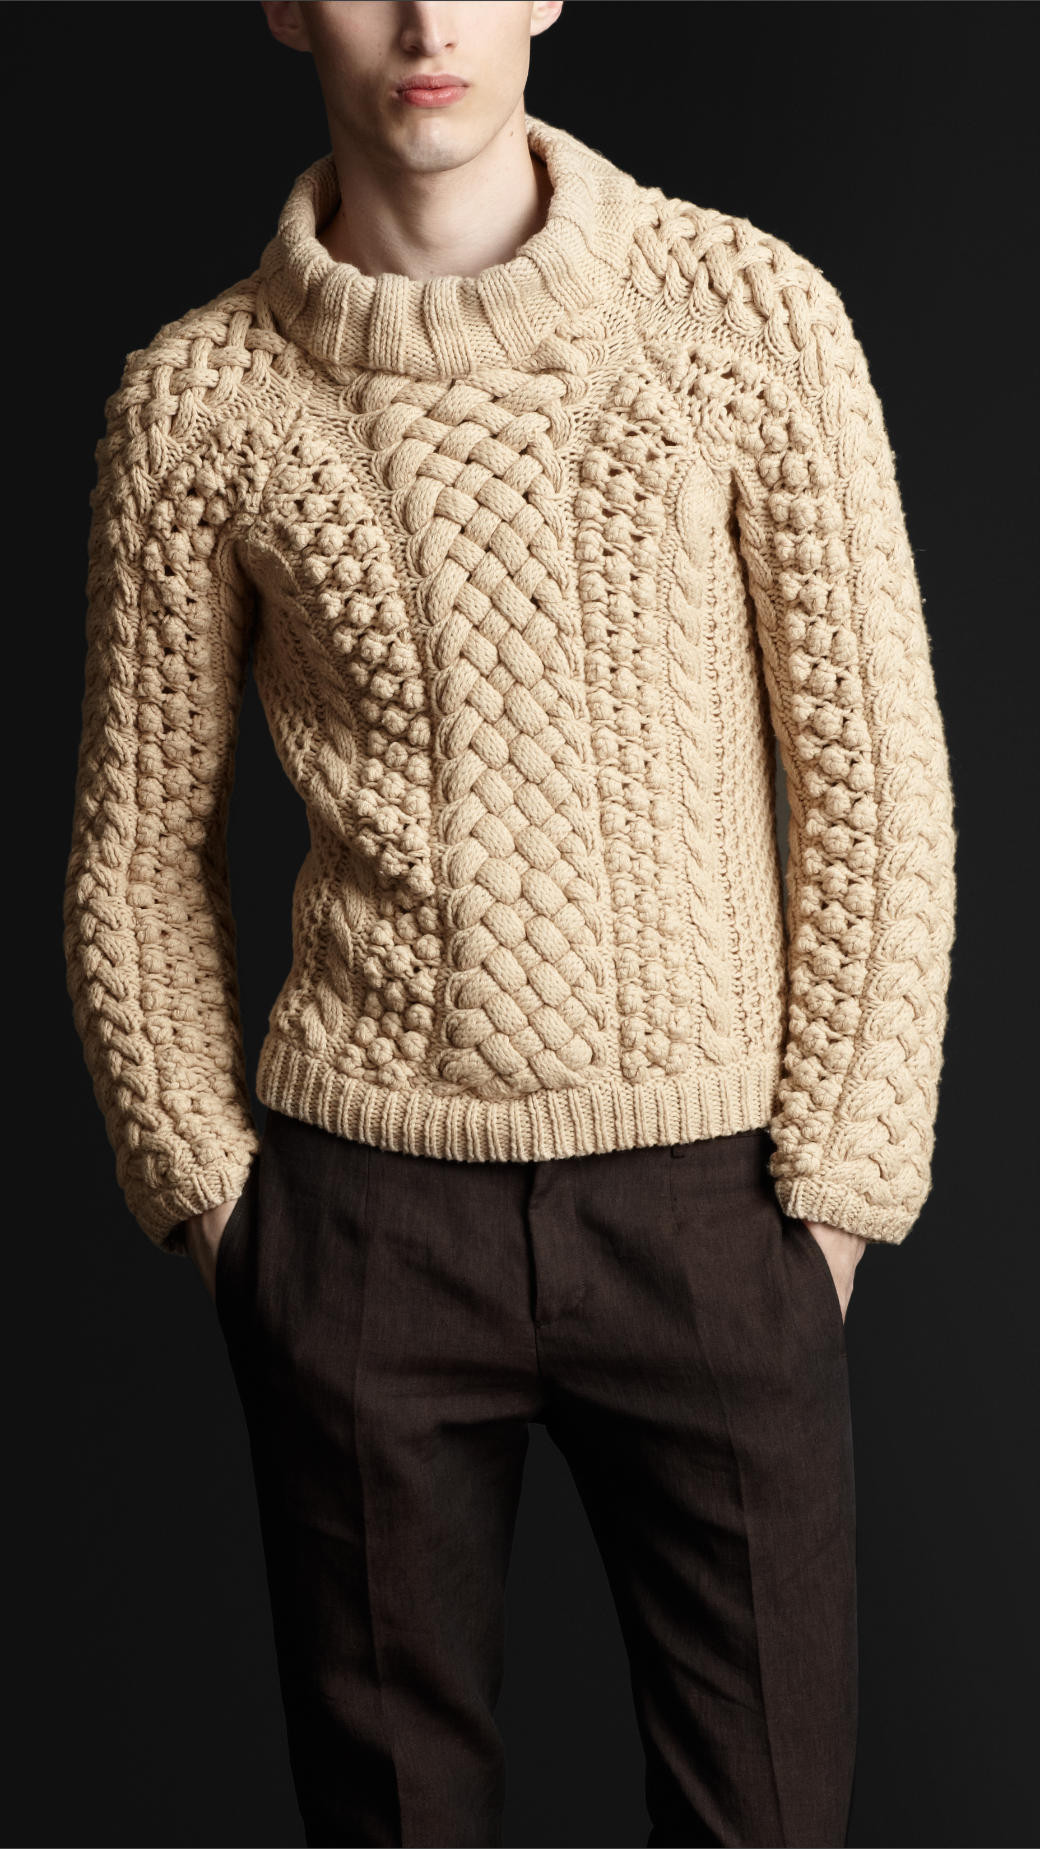 Mens Cable Knit Cardigan Best Of Burberry Prorsum Chunky Cable Knit Sweater In Natural for Of New 45 Models Mens Cable Knit Cardigan